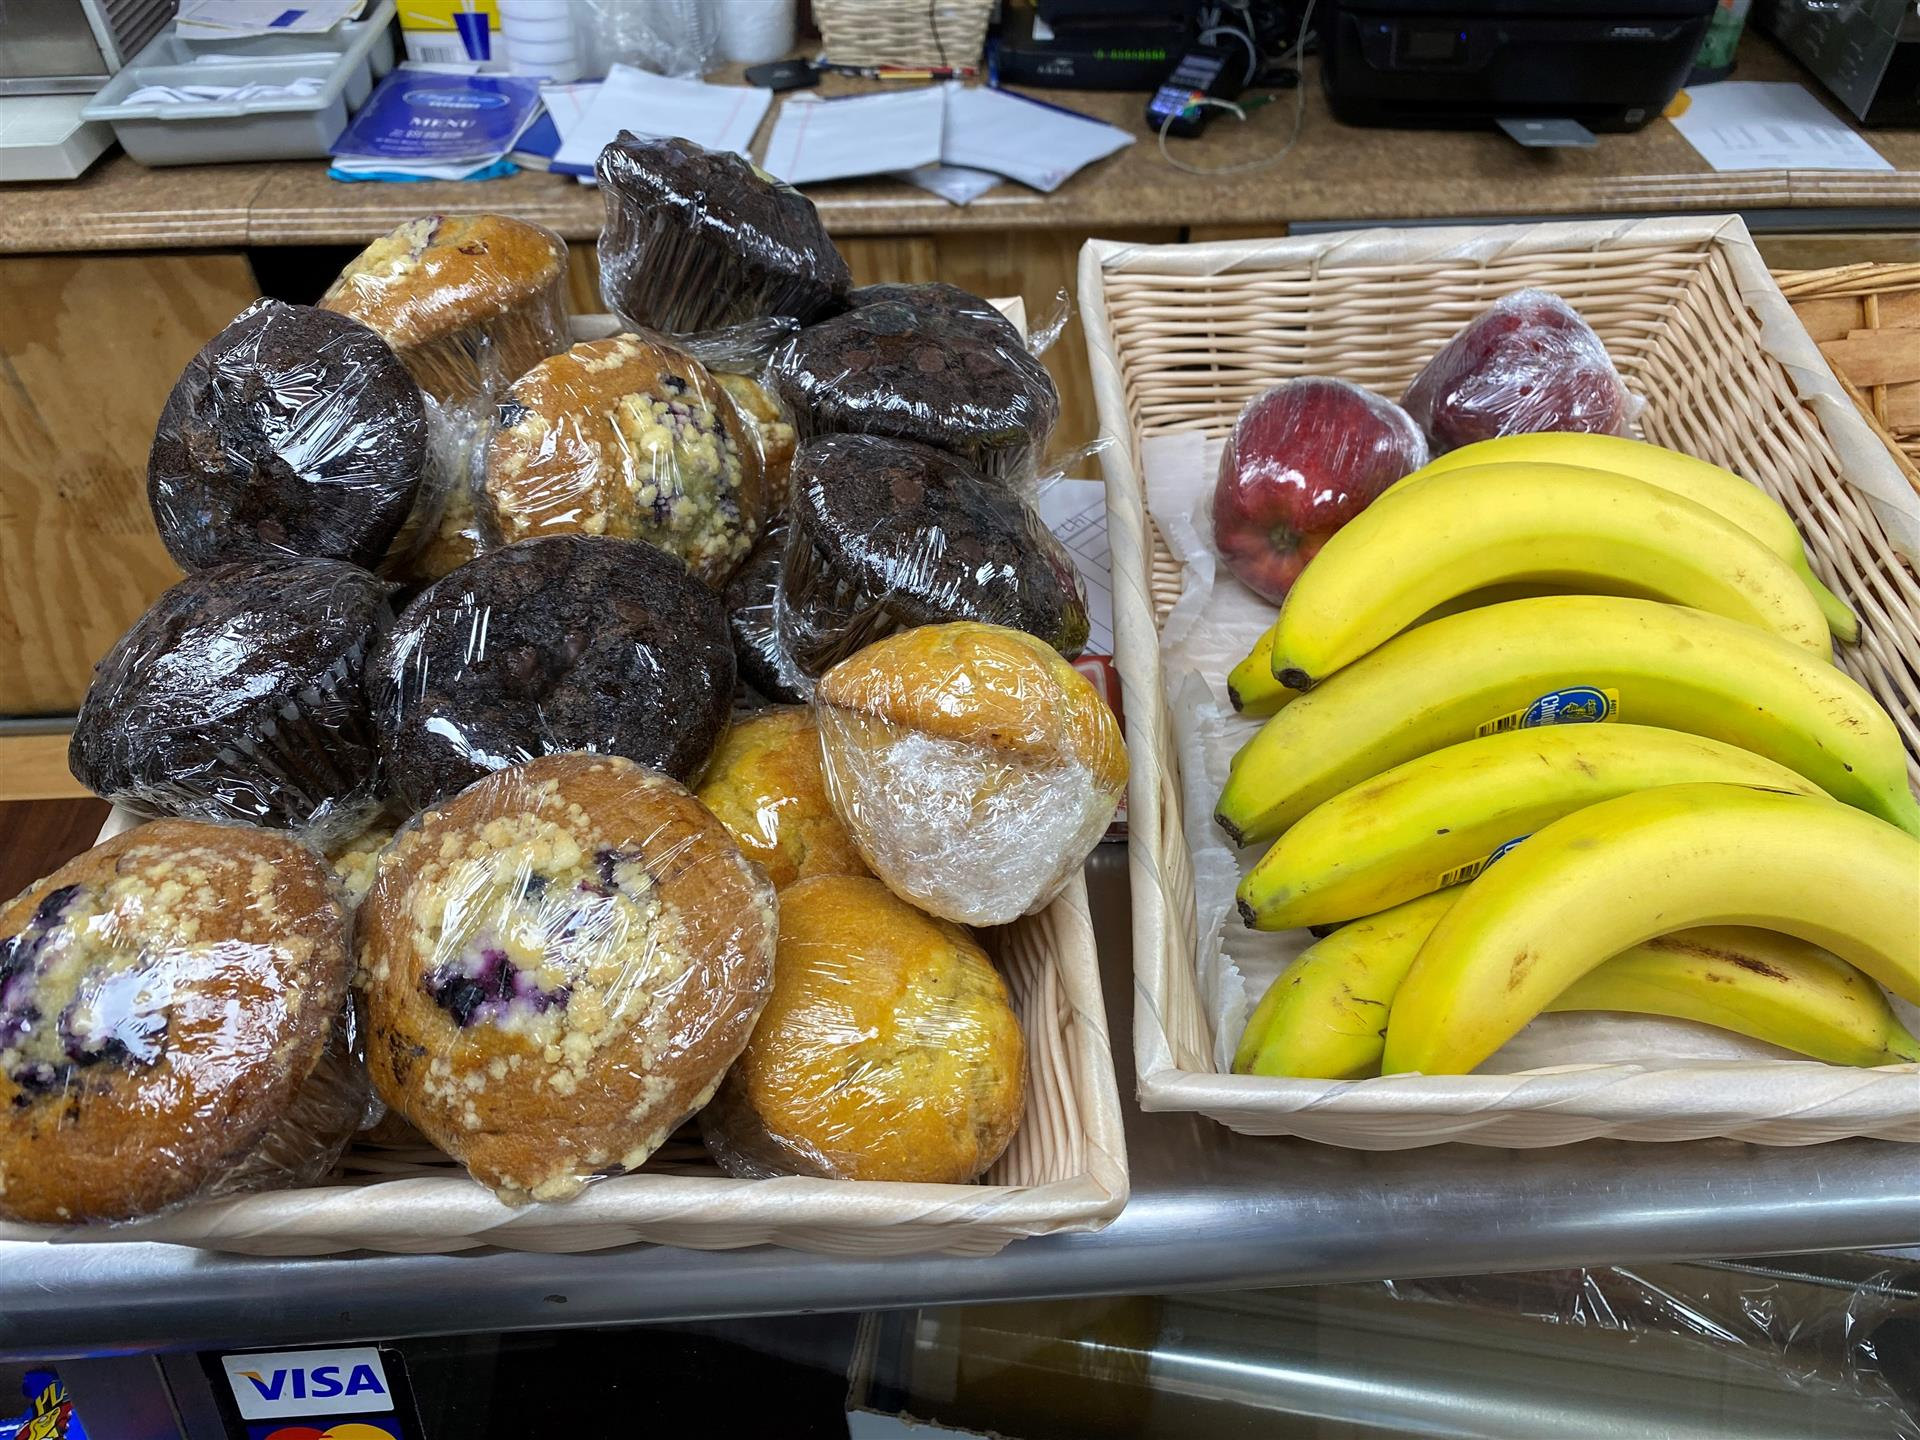 individually wrapped muffins and fruit in baskets